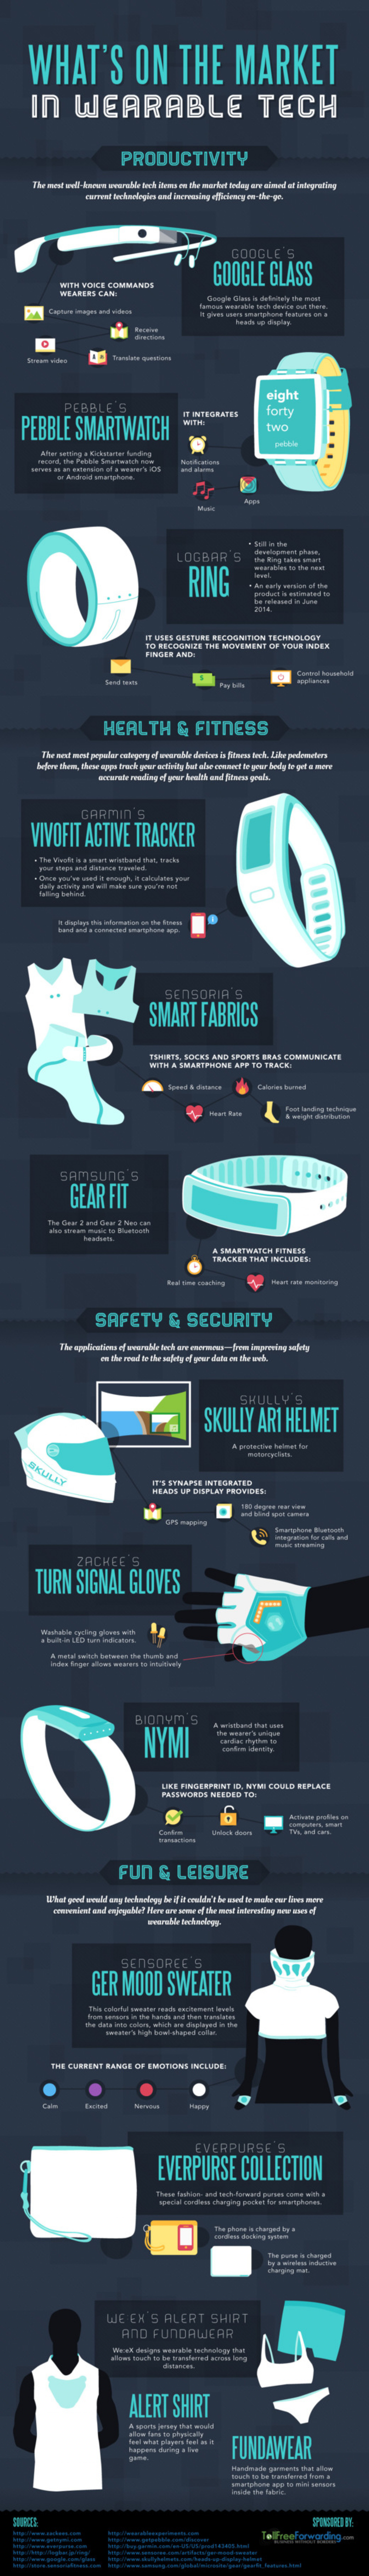 What's on the Market in Wearable Tech Infographic